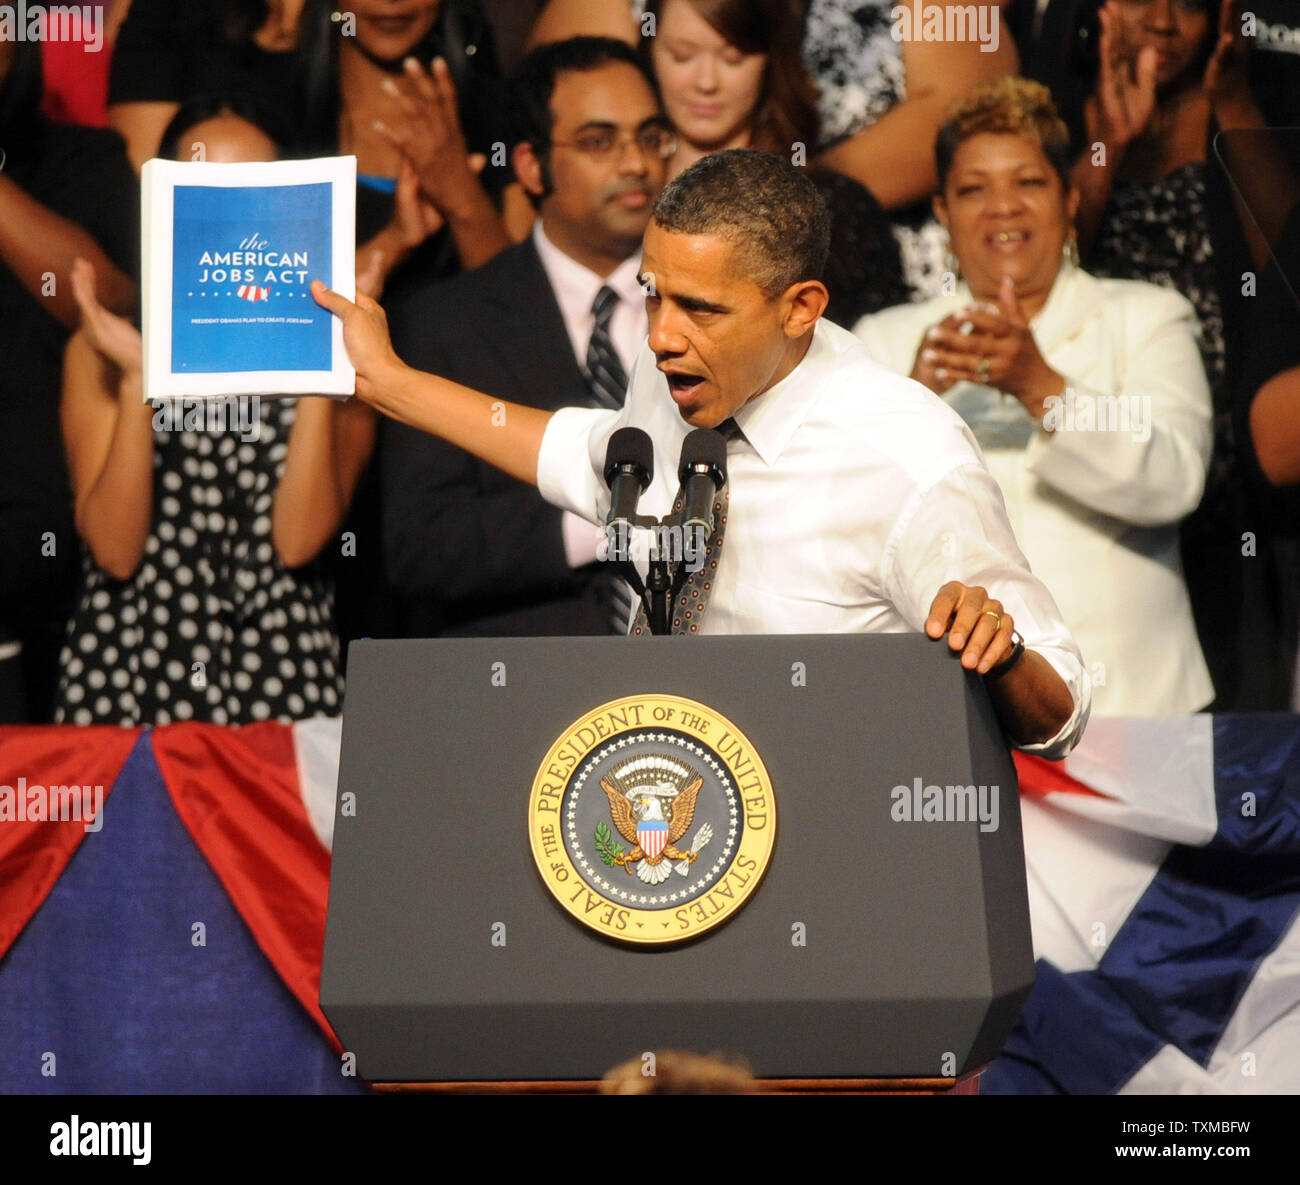 U. S. President Barack Obama talks about his American Jobs Act during a visit to Eastfield College in Mesquite, Texas.  The President also attended two Democratic fund raising events while in Dallas.   UPI/Ian Halperin Stock Photo